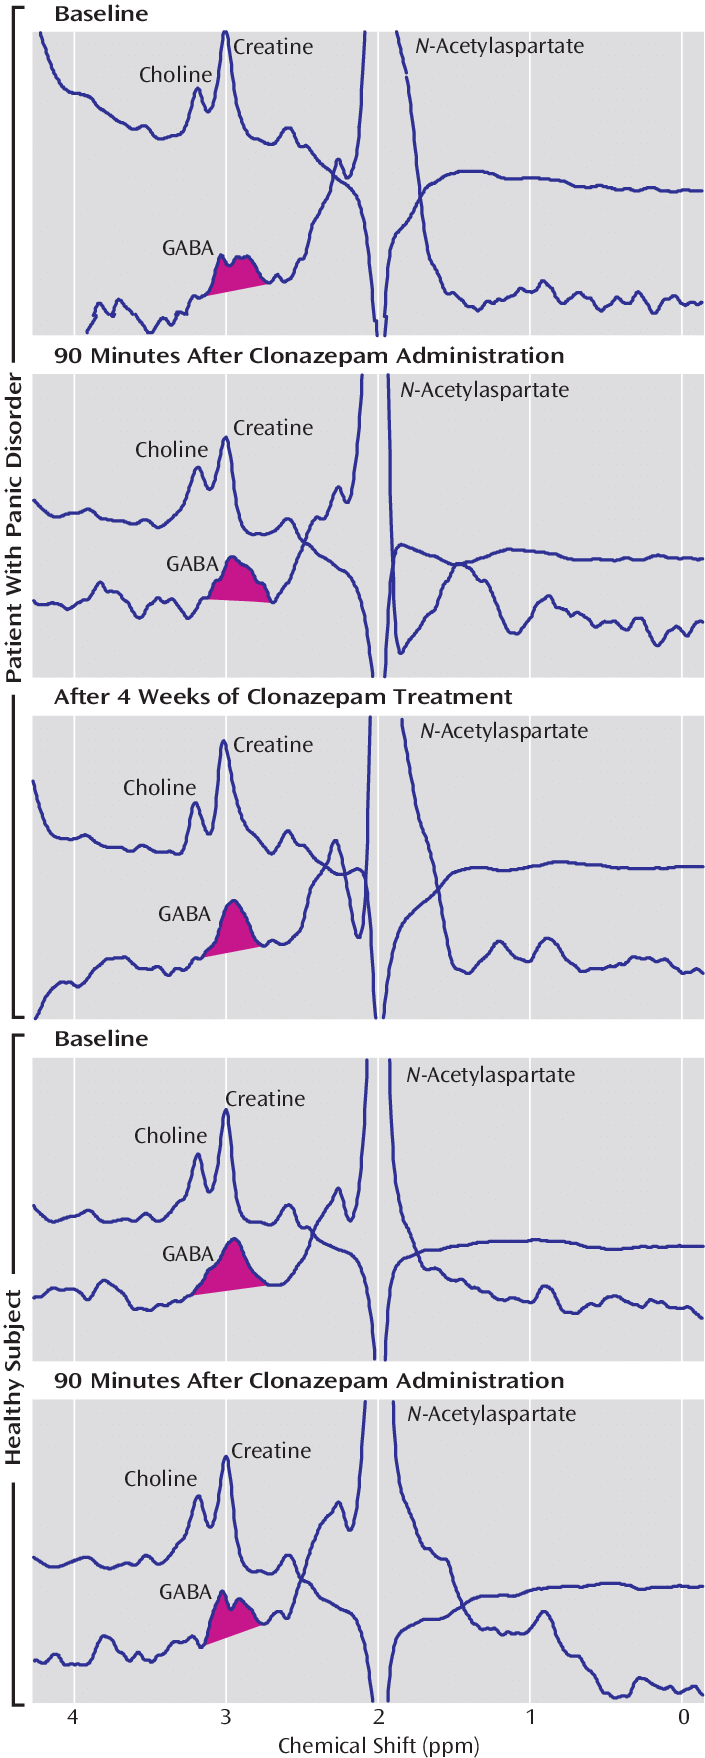 medium resolution of representative gaba spectra obtained before and after clonazepam exposure in a panic disorder subject and an